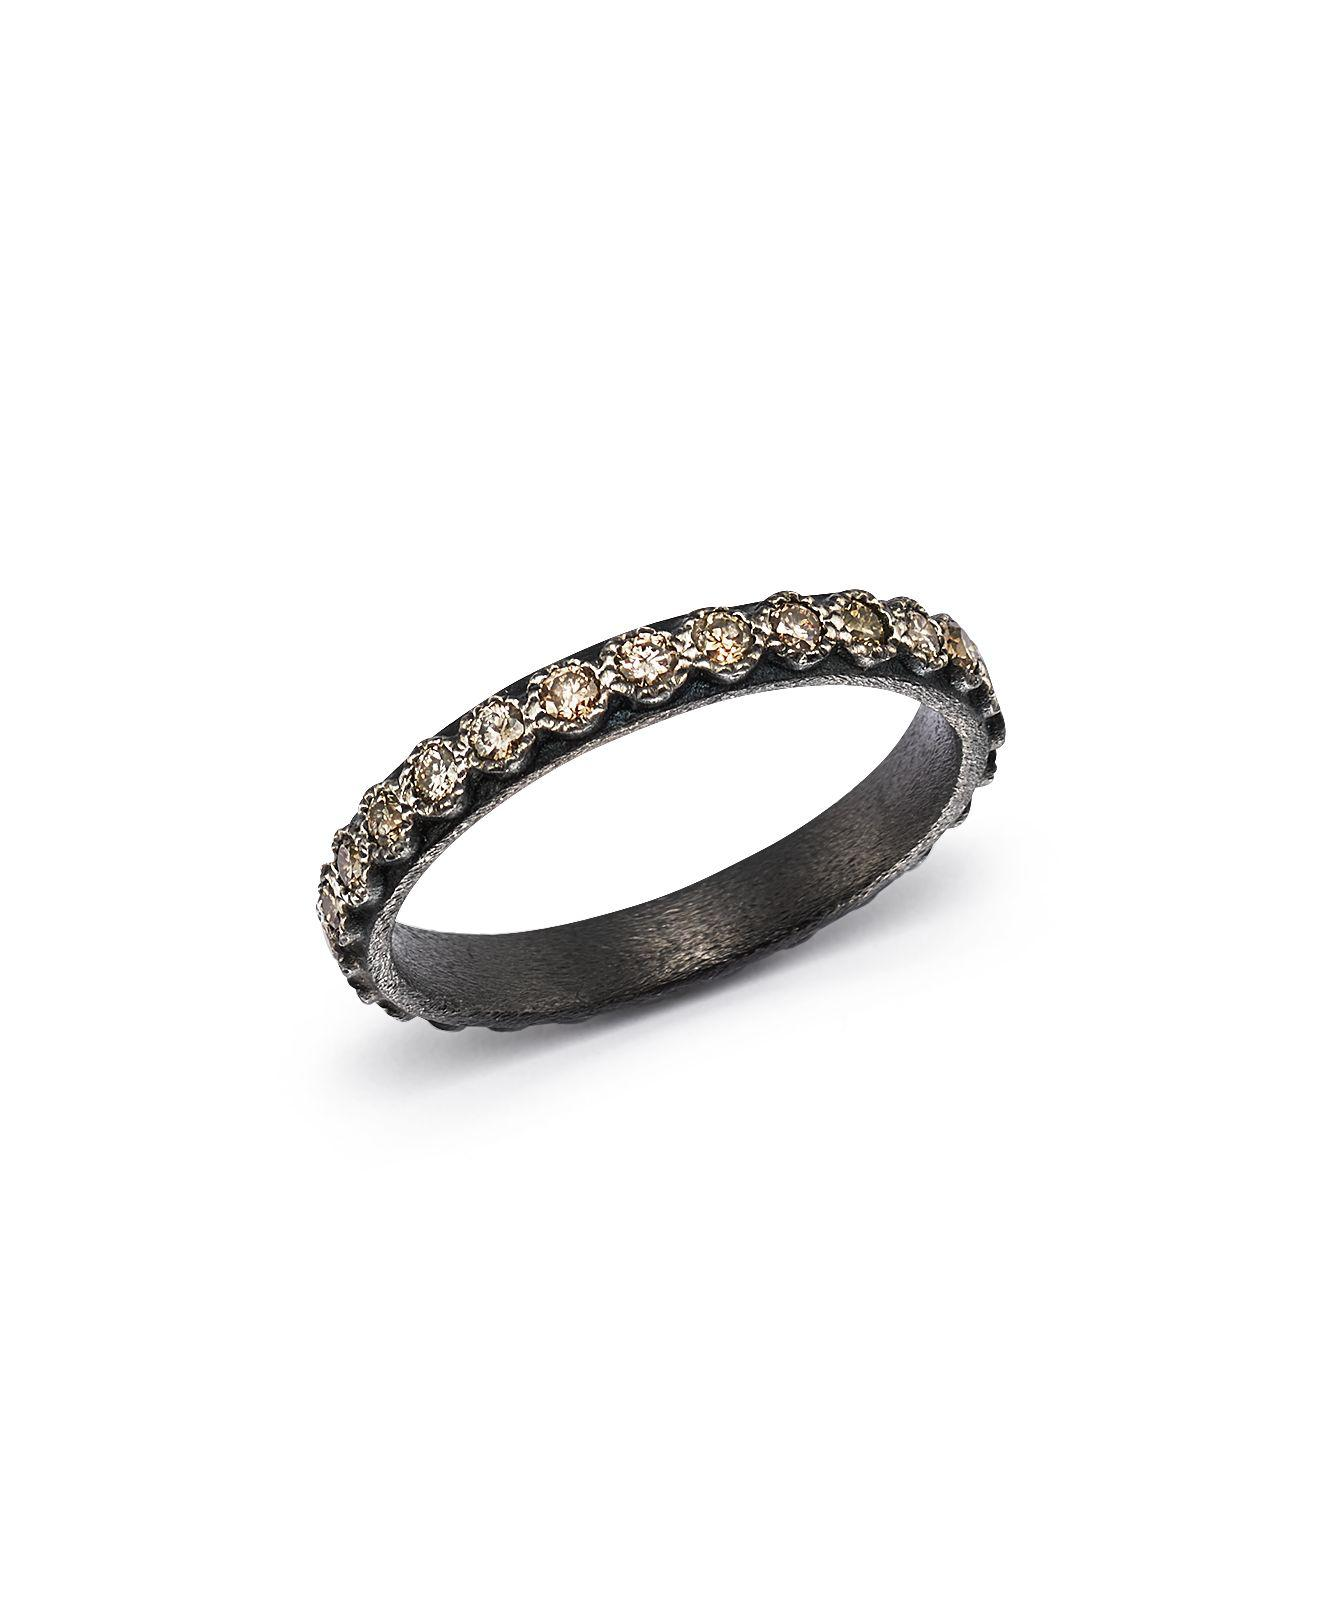 Armenta Black Diamond Silver Stackable Ring YvZ1s9cSd9